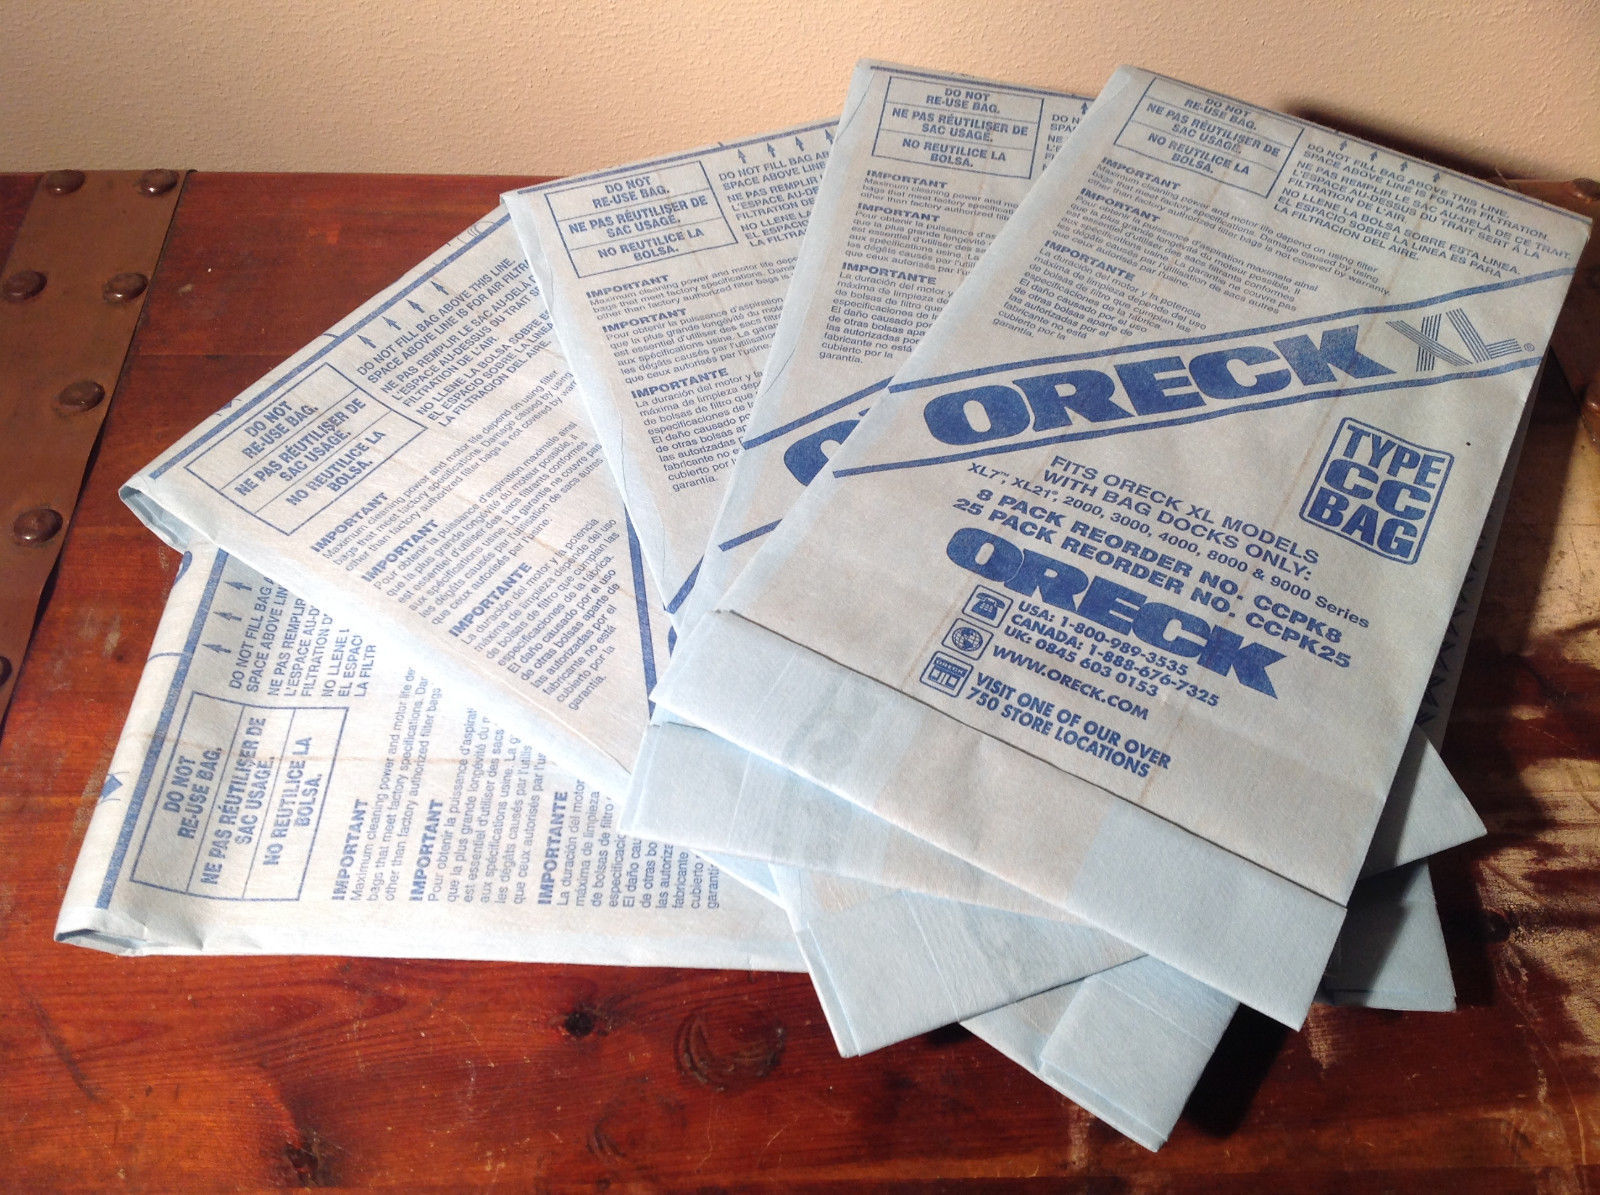 Five Piece Lot Genuine Oreck Type CC Filter Bag System Replacement Bags Size XL